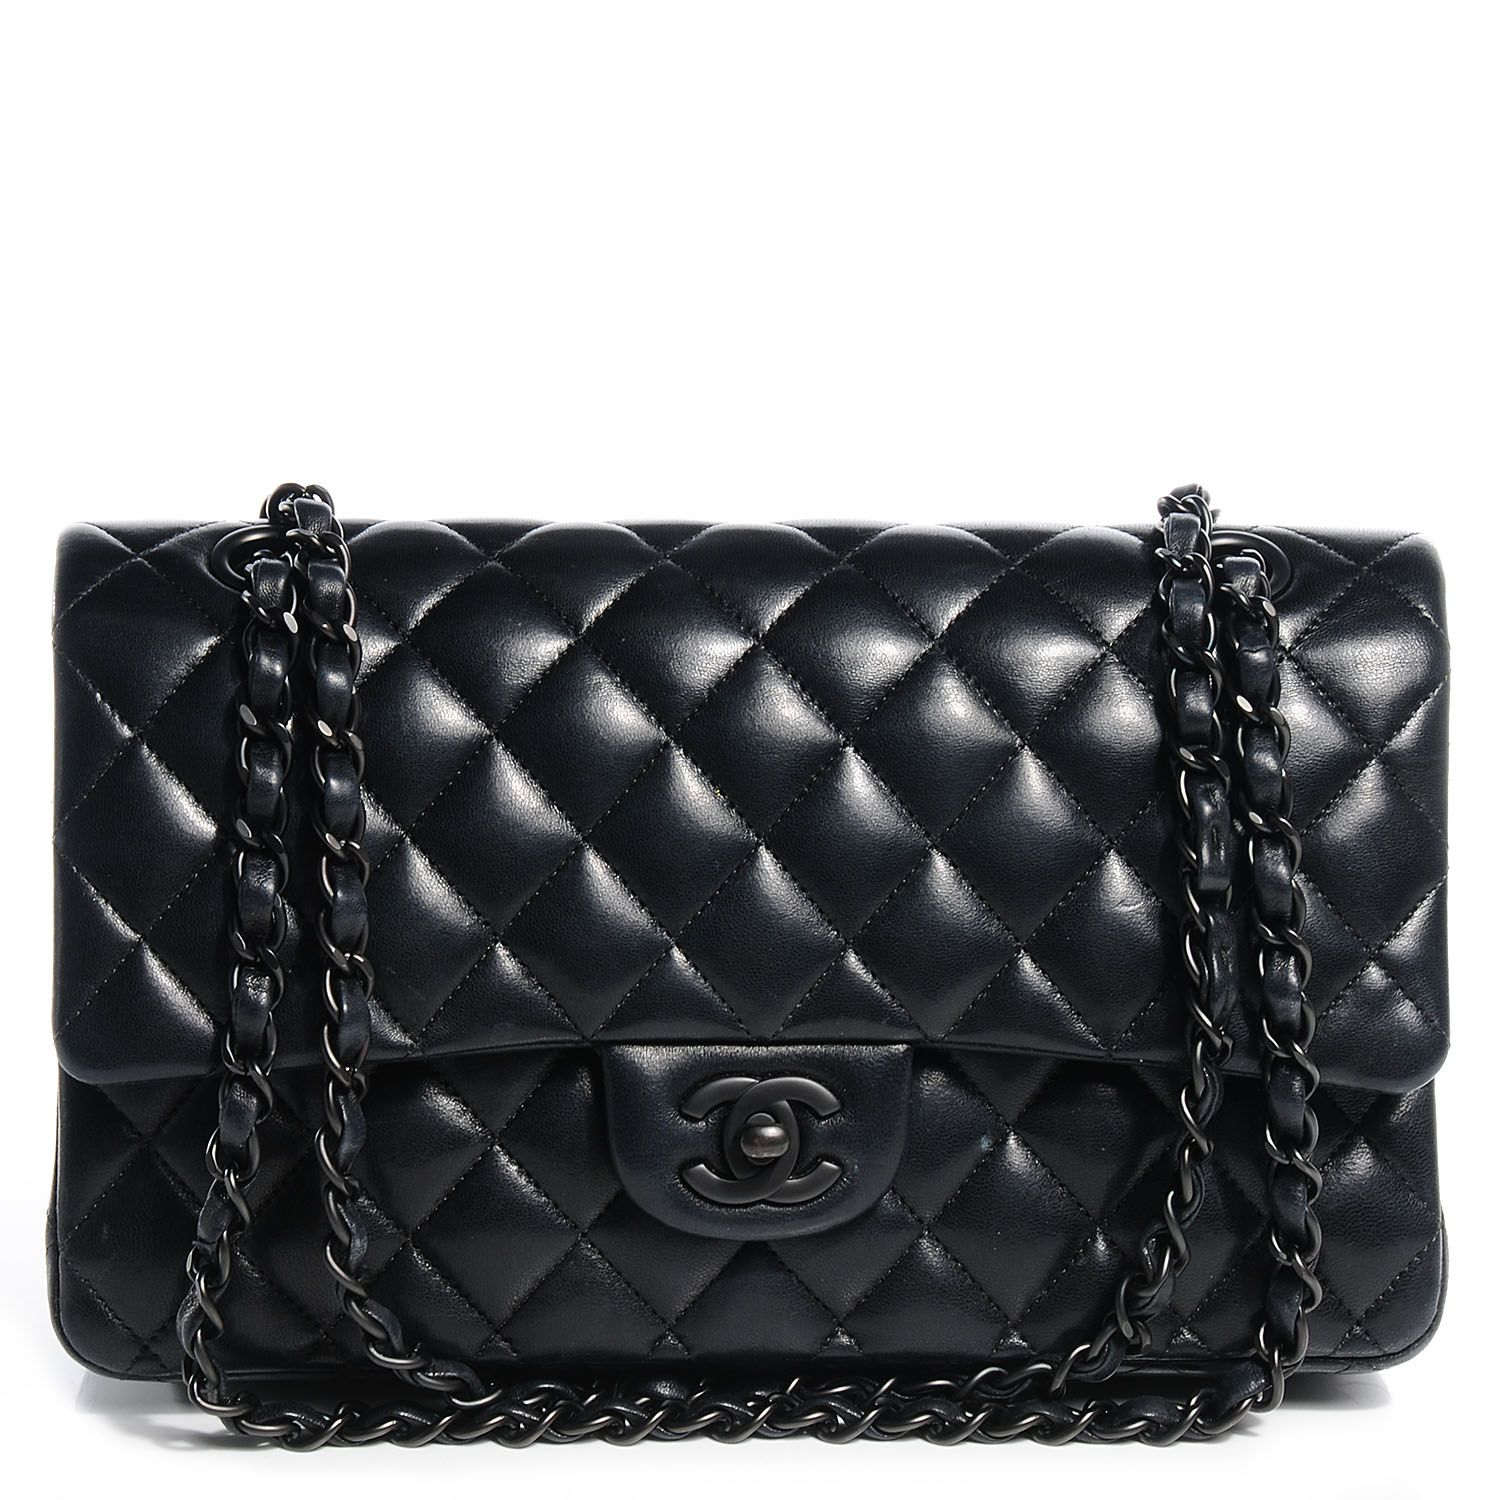 0b480198d2e8 Fashionphile - CHANEL Lambskin Quilted Medium Double Flap So Black. Find  this Pin and ...